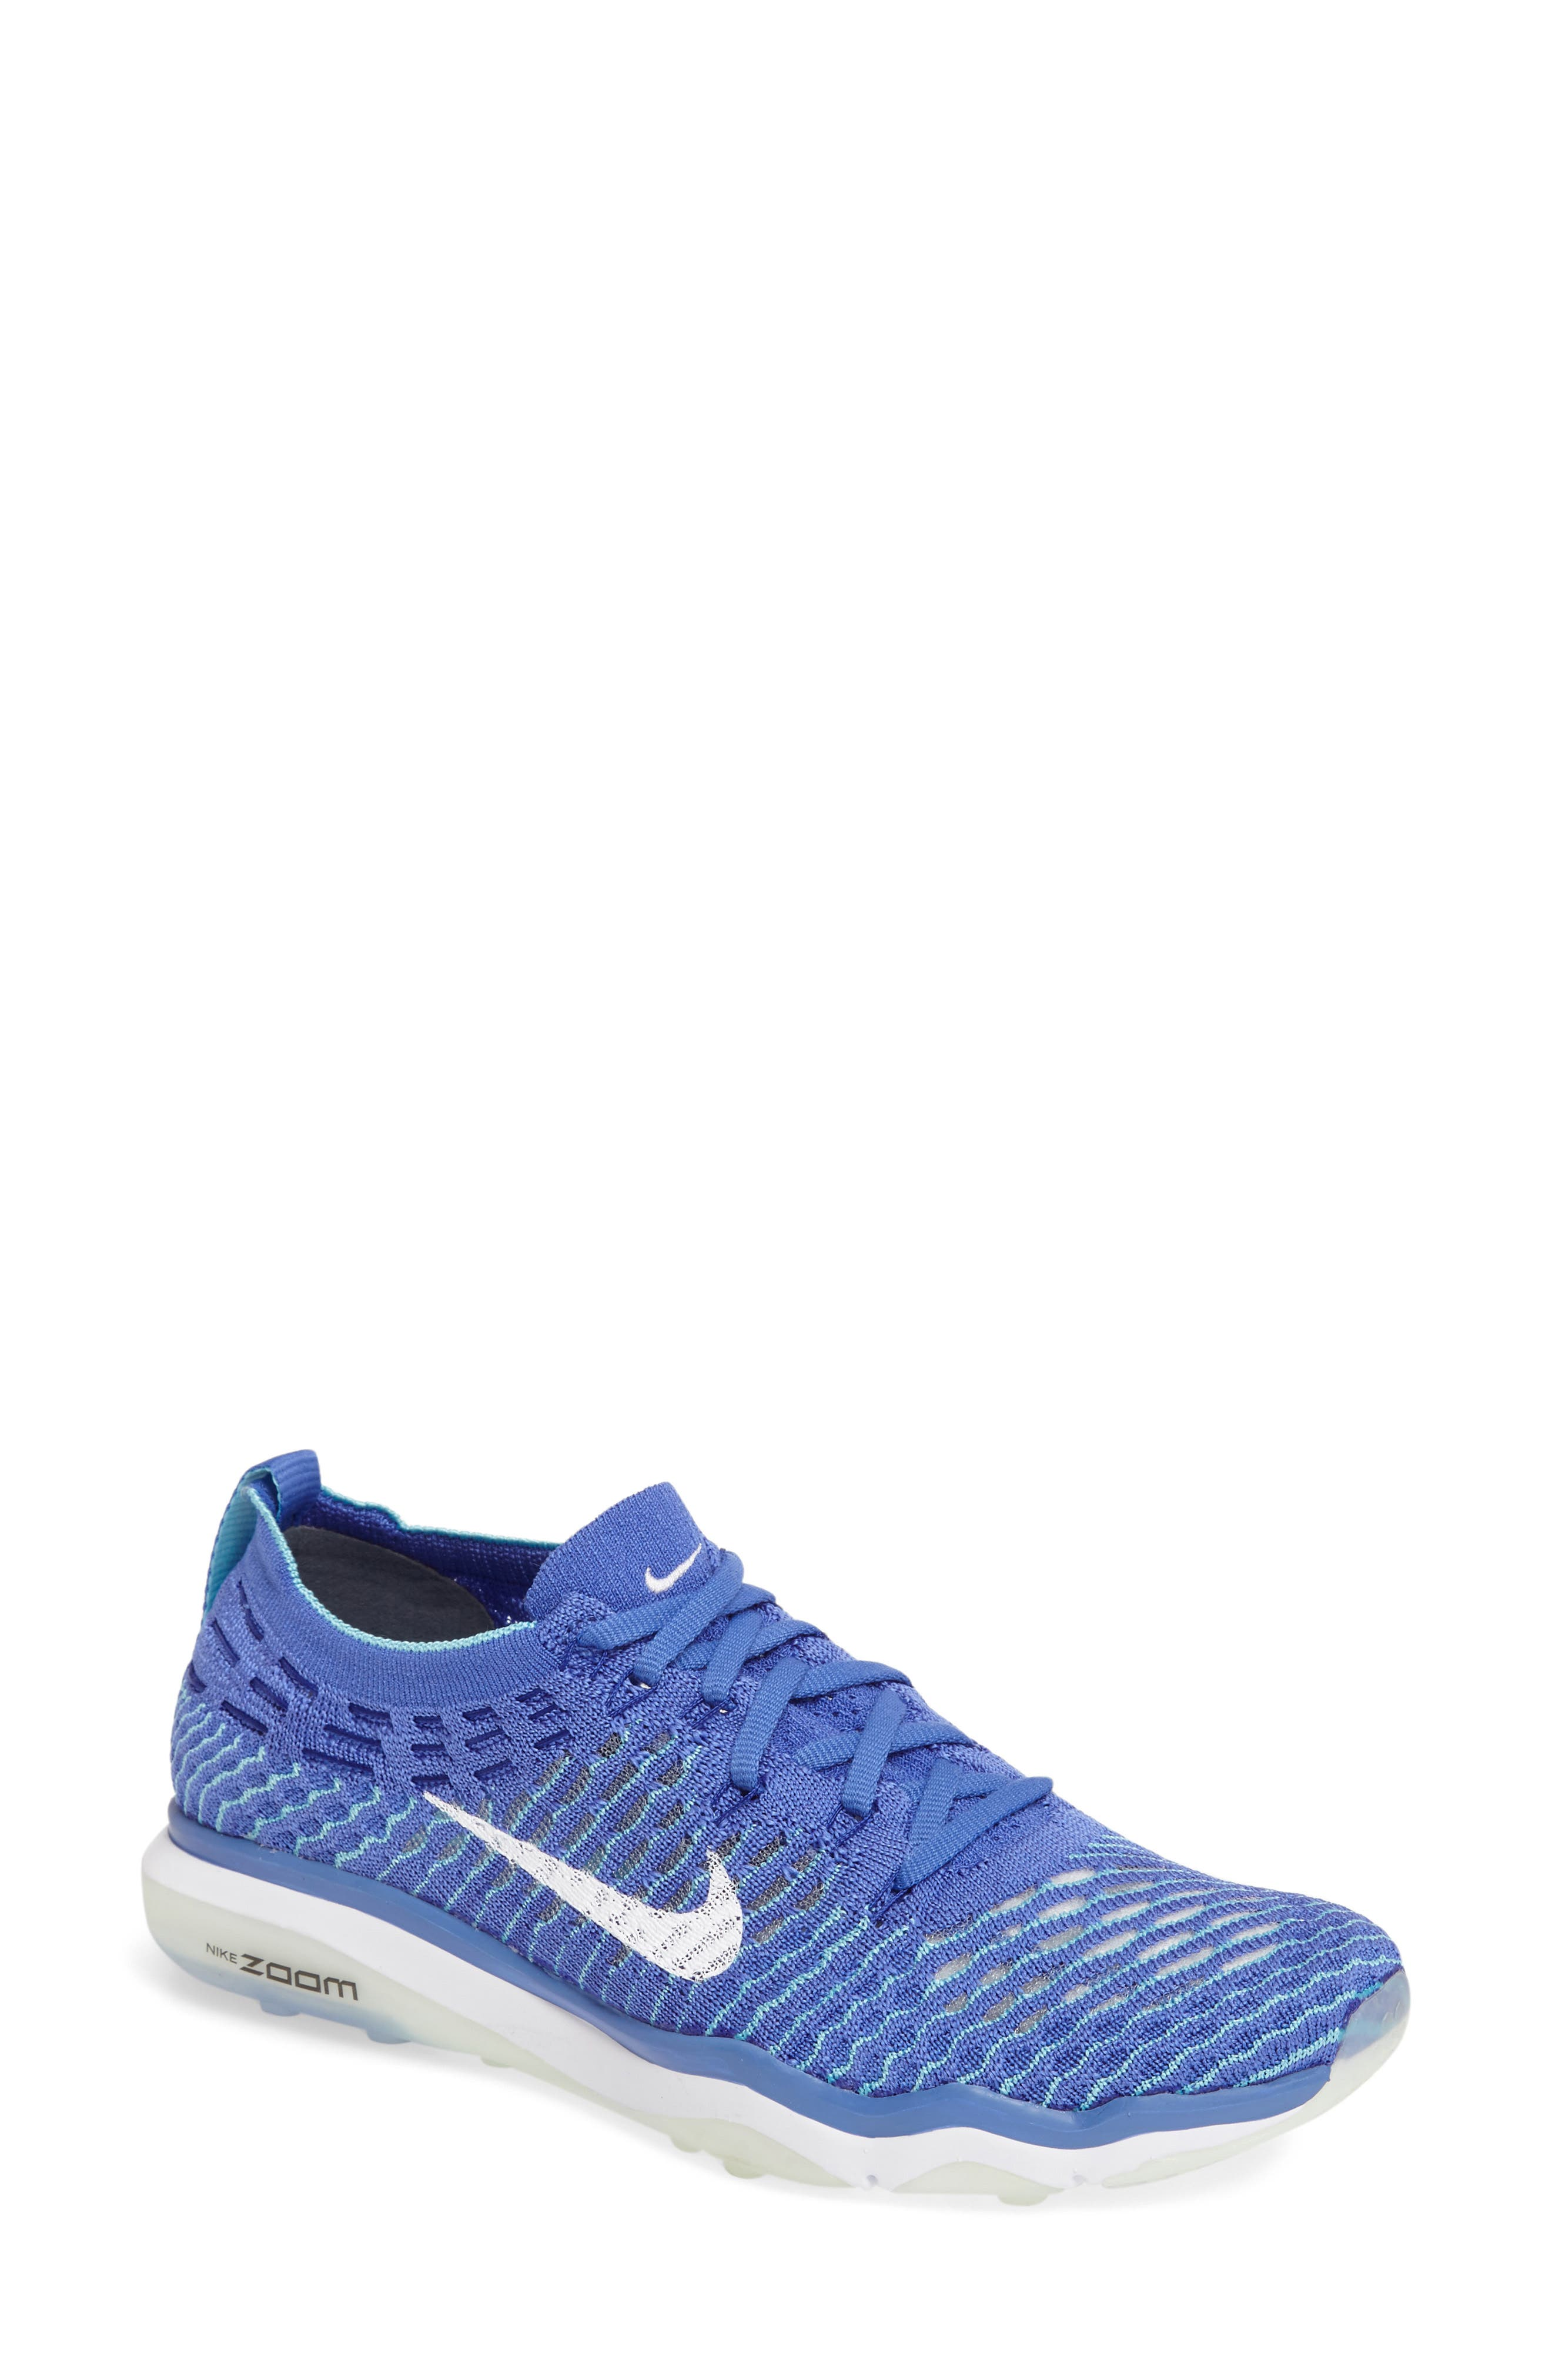 Air Zoom Fearless Flyknit Training Shoe,                             Main thumbnail 9, color,